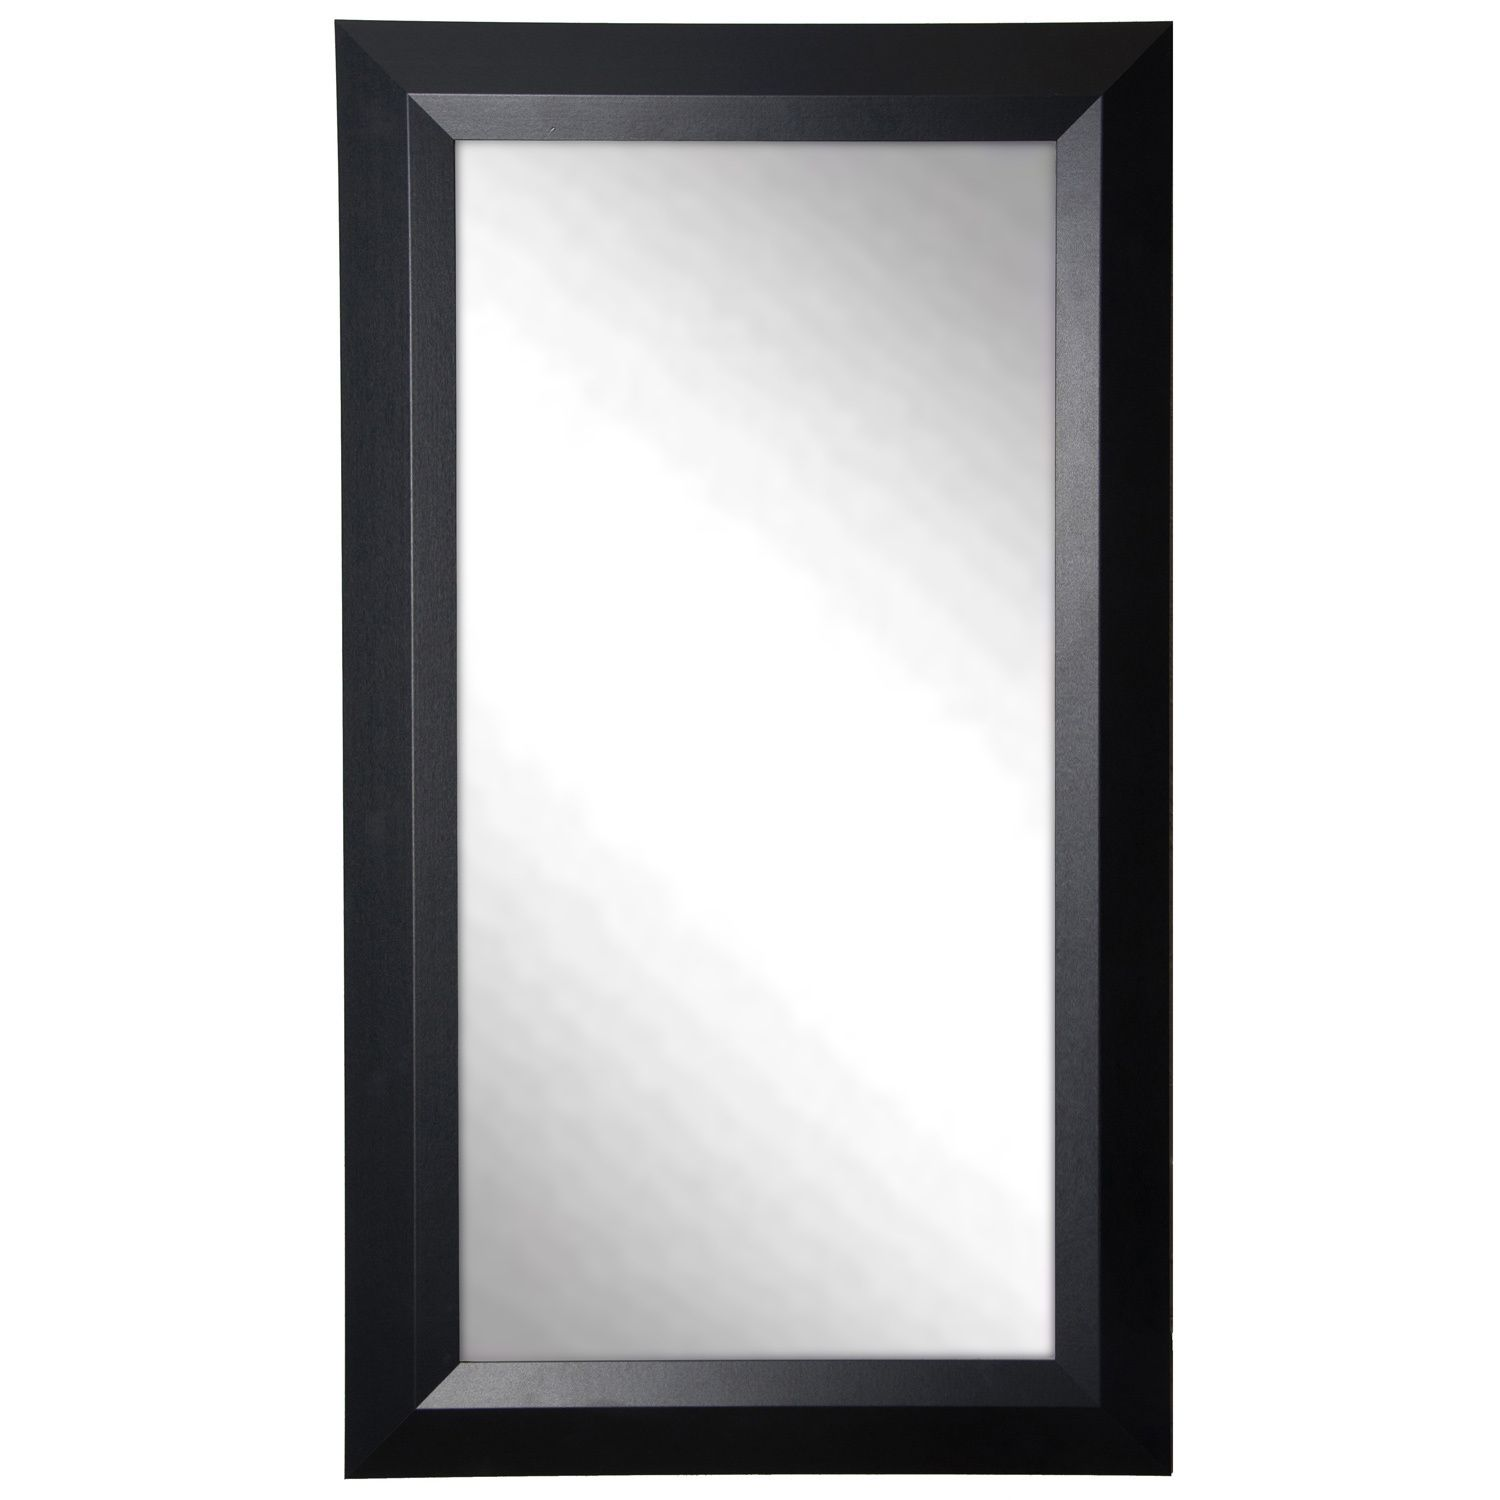 Accent Your Favorite Room With This Classic, Time Honored Full